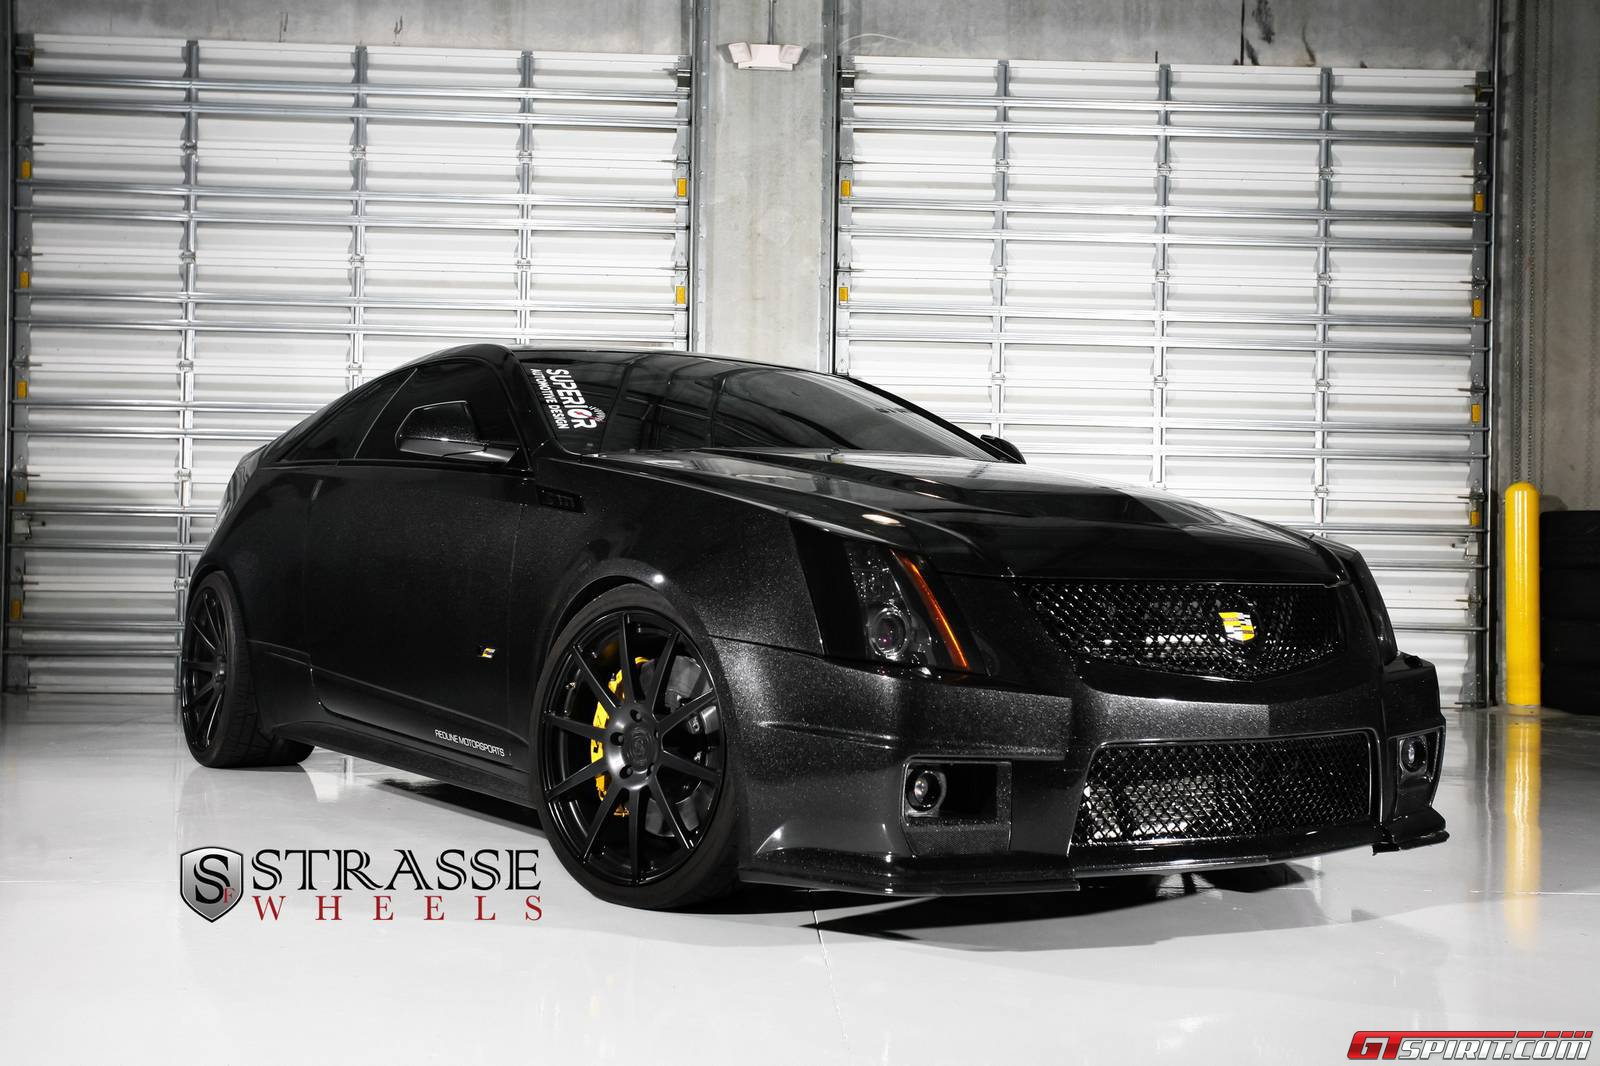 Car list forza horizon also 2012 cadillac cts 2 door coupe on 2005